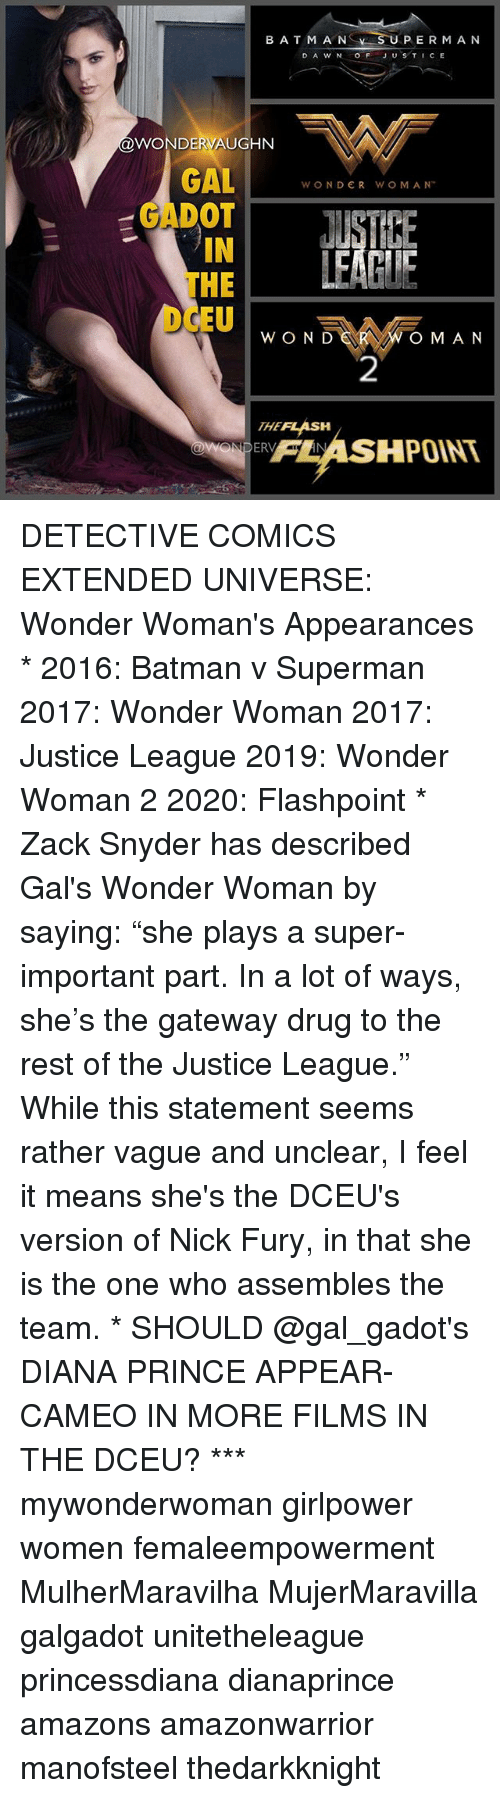 "Batman, Memes, and Prince: BATM A NS  SU  PERMA N  D A W N OFJUSTICE  @WONDERVAUGHN  GALWONDER WO M AM  GADOT  IN  THE  EUw O N  OM AN  2  THEFLASH  FLASHPOINT  95 DETECTIVE COMICS EXTENDED UNIVERSE: Wonder Woman's Appearances * 2016: Batman v Superman 2017: Wonder Woman 2017: Justice League 2019: Wonder Woman 2 2020: Flashpoint * Zack Snyder has described Gal's Wonder Woman by saying: ""she plays a super-important part. In a lot of ways, she's the gateway drug to the rest of the Justice League."" While this statement seems rather vague and unclear, I feel it means she's the DCEU's version of Nick Fury, in that she is the one who assembles the team. * SHOULD @gal_gadot's DIANA PRINCE APPEAR-CAMEO IN MORE FILMS IN THE DCEU? *** mywonderwoman girlpower women femaleempowerment MulherMaravilha MujerMaravilla galgadot unitetheleague princessdiana dianaprince amazons amazonwarrior manofsteel thedarkknight"